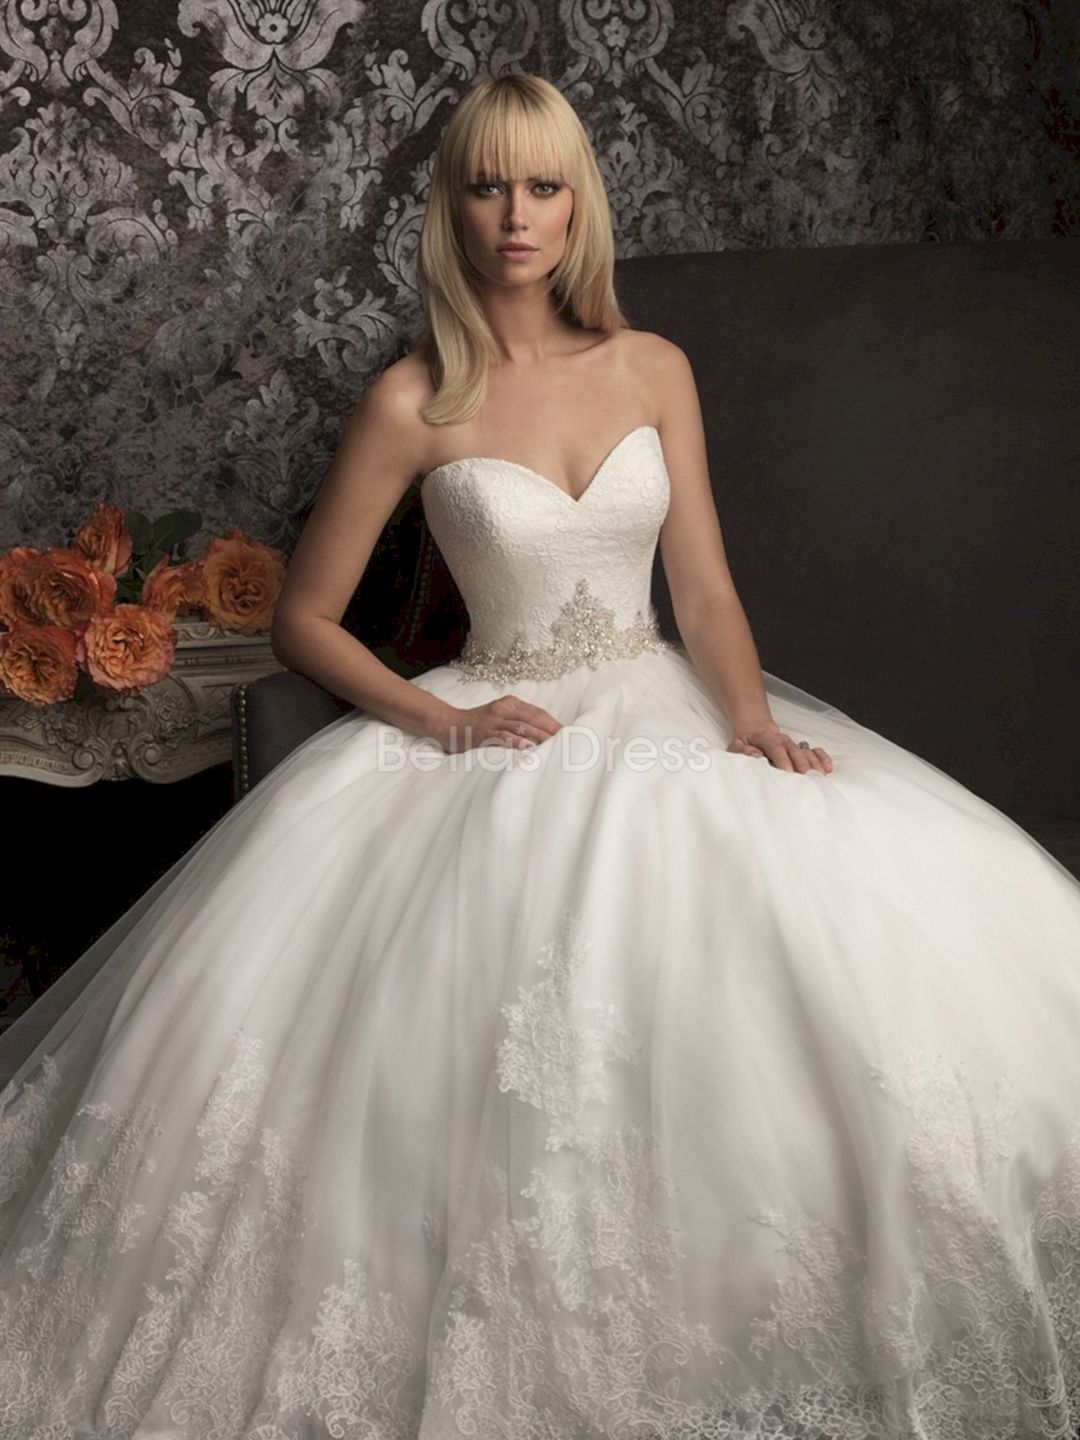 40+ Beautiful Princess Wedding Dress Ideas For Perfect Bride ...